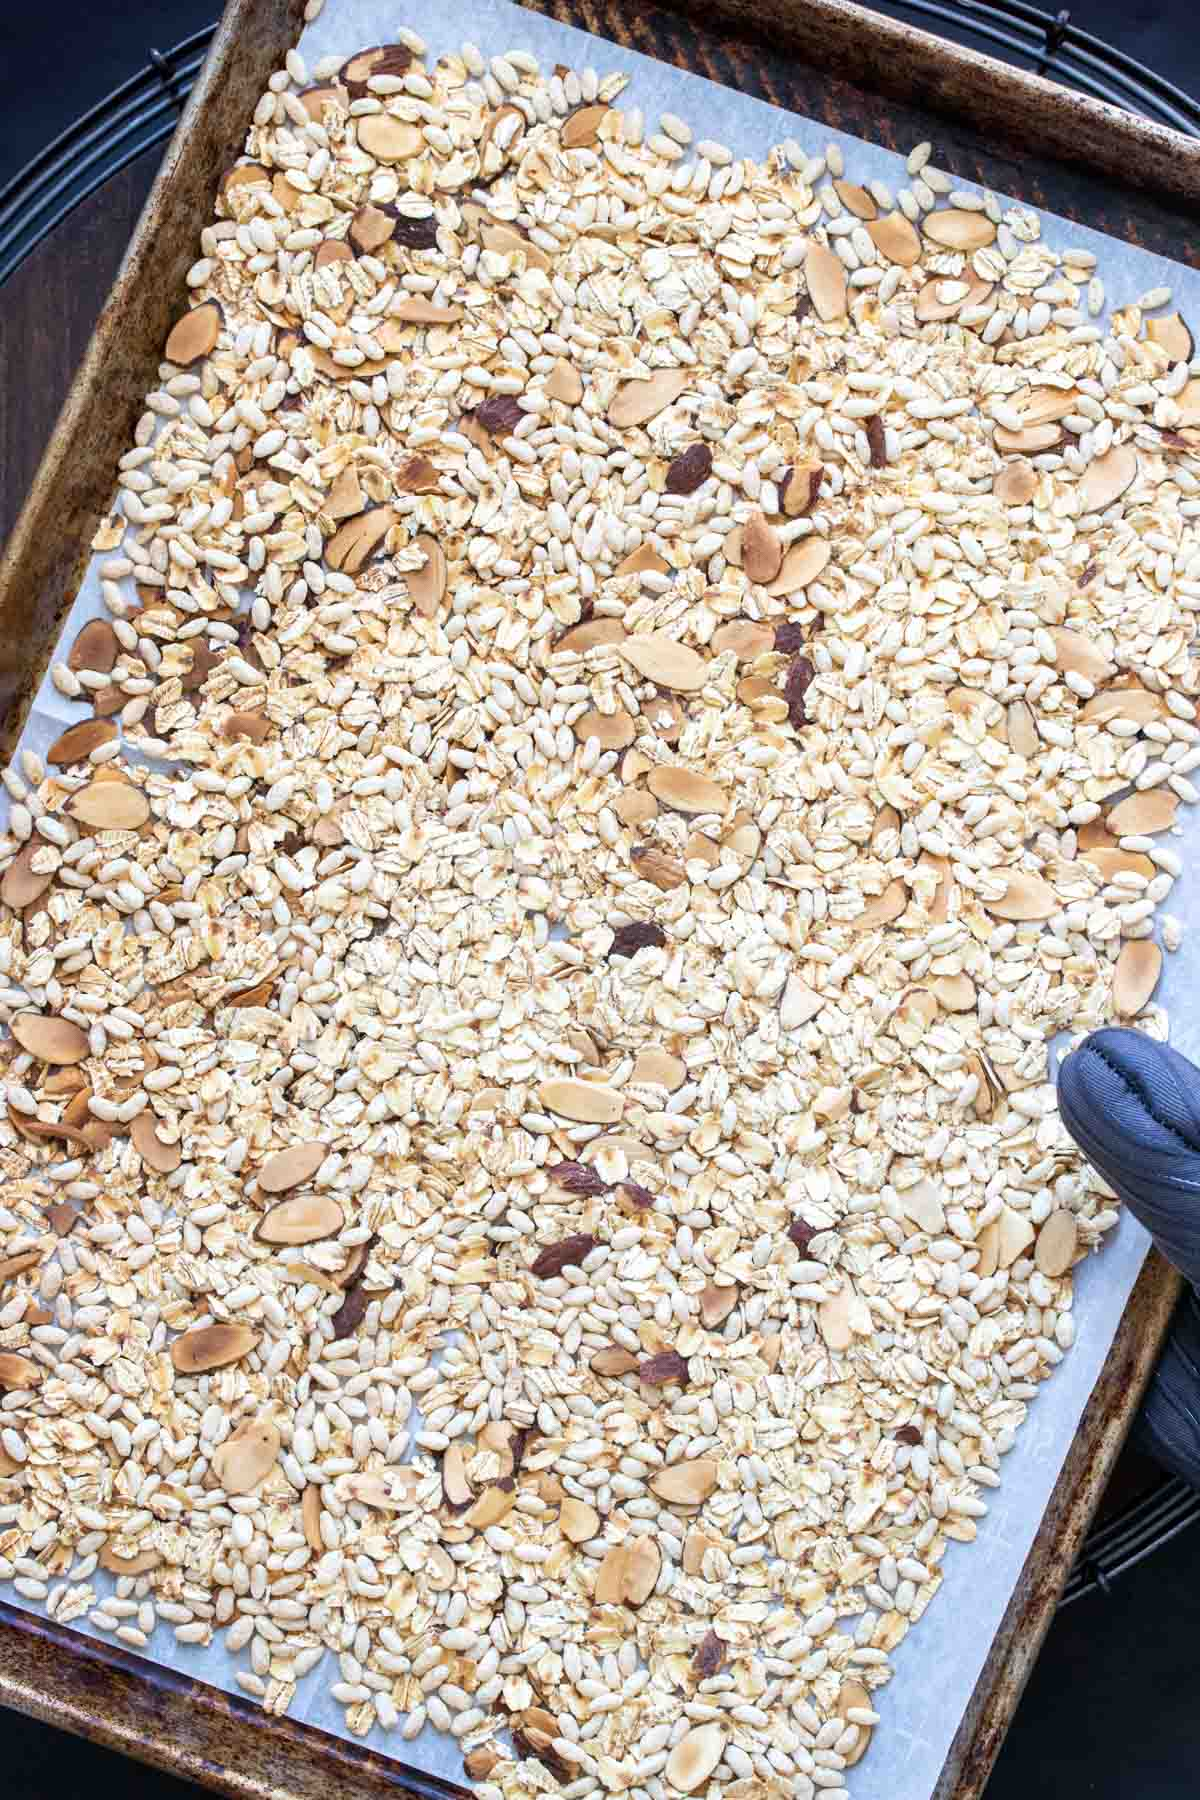 Baking sheet with oats, rice cereal and sliced almonds on it